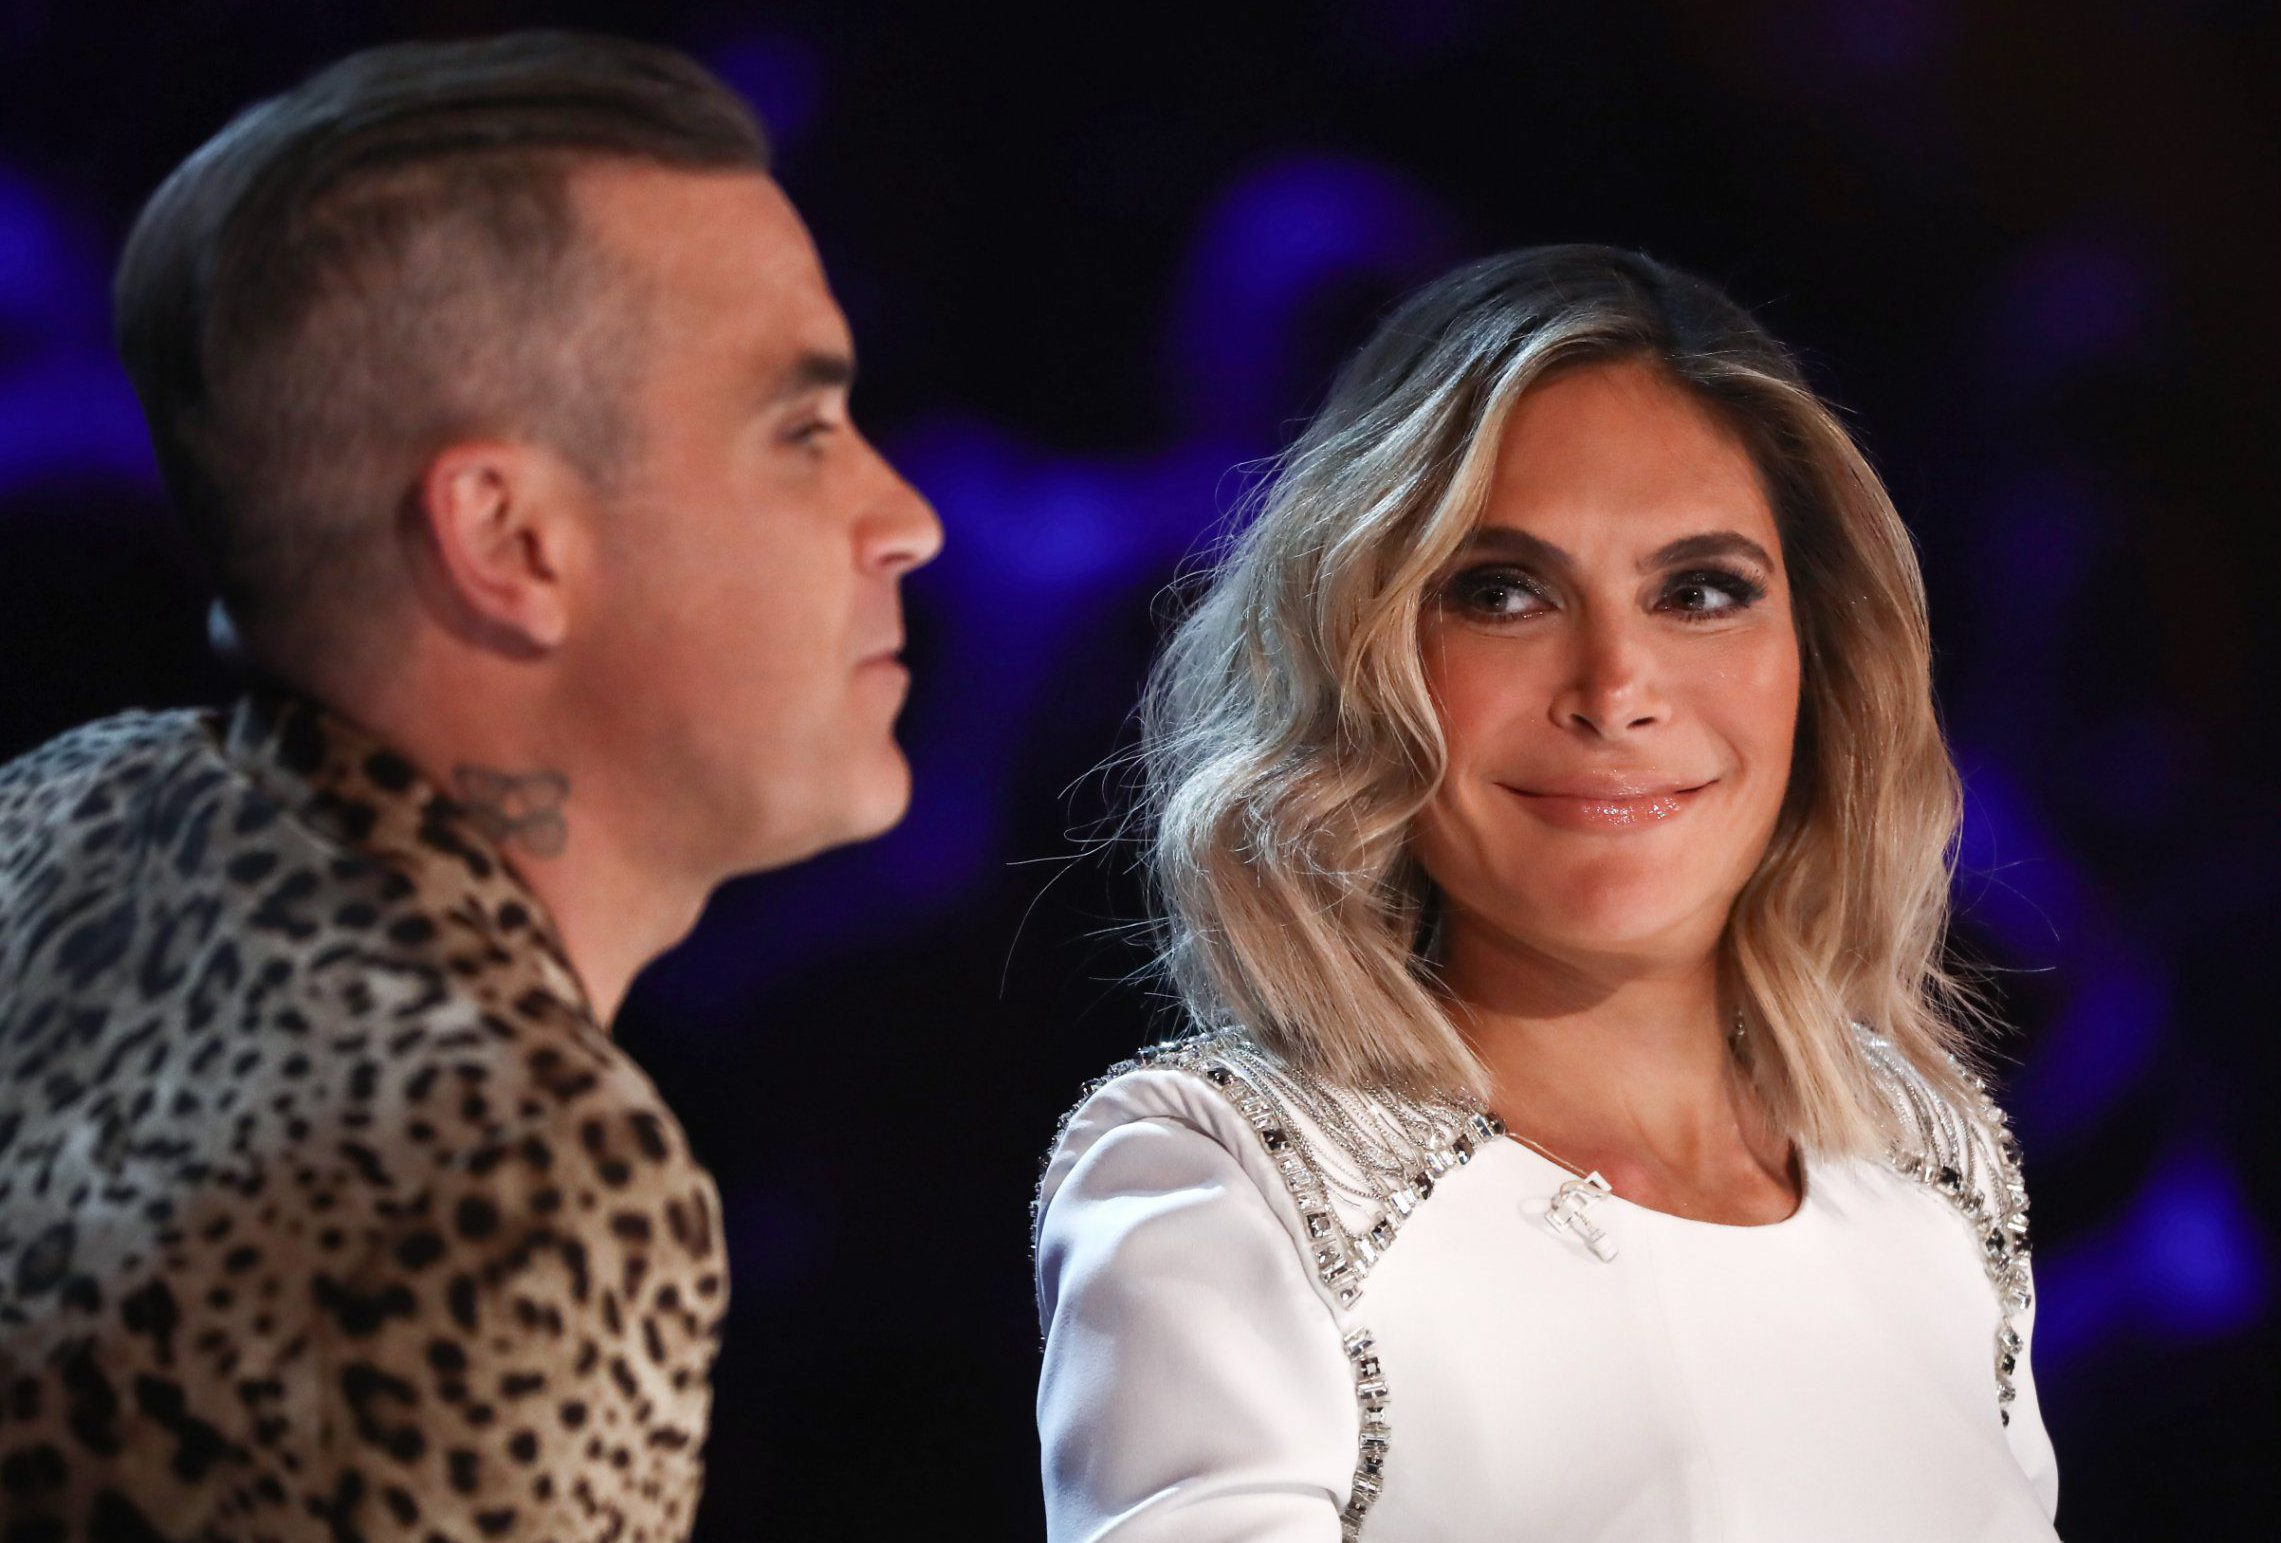 X Factor's Robbie Williams and Ayda Fields celebrate son's 4th birthday with cute sing-a-long